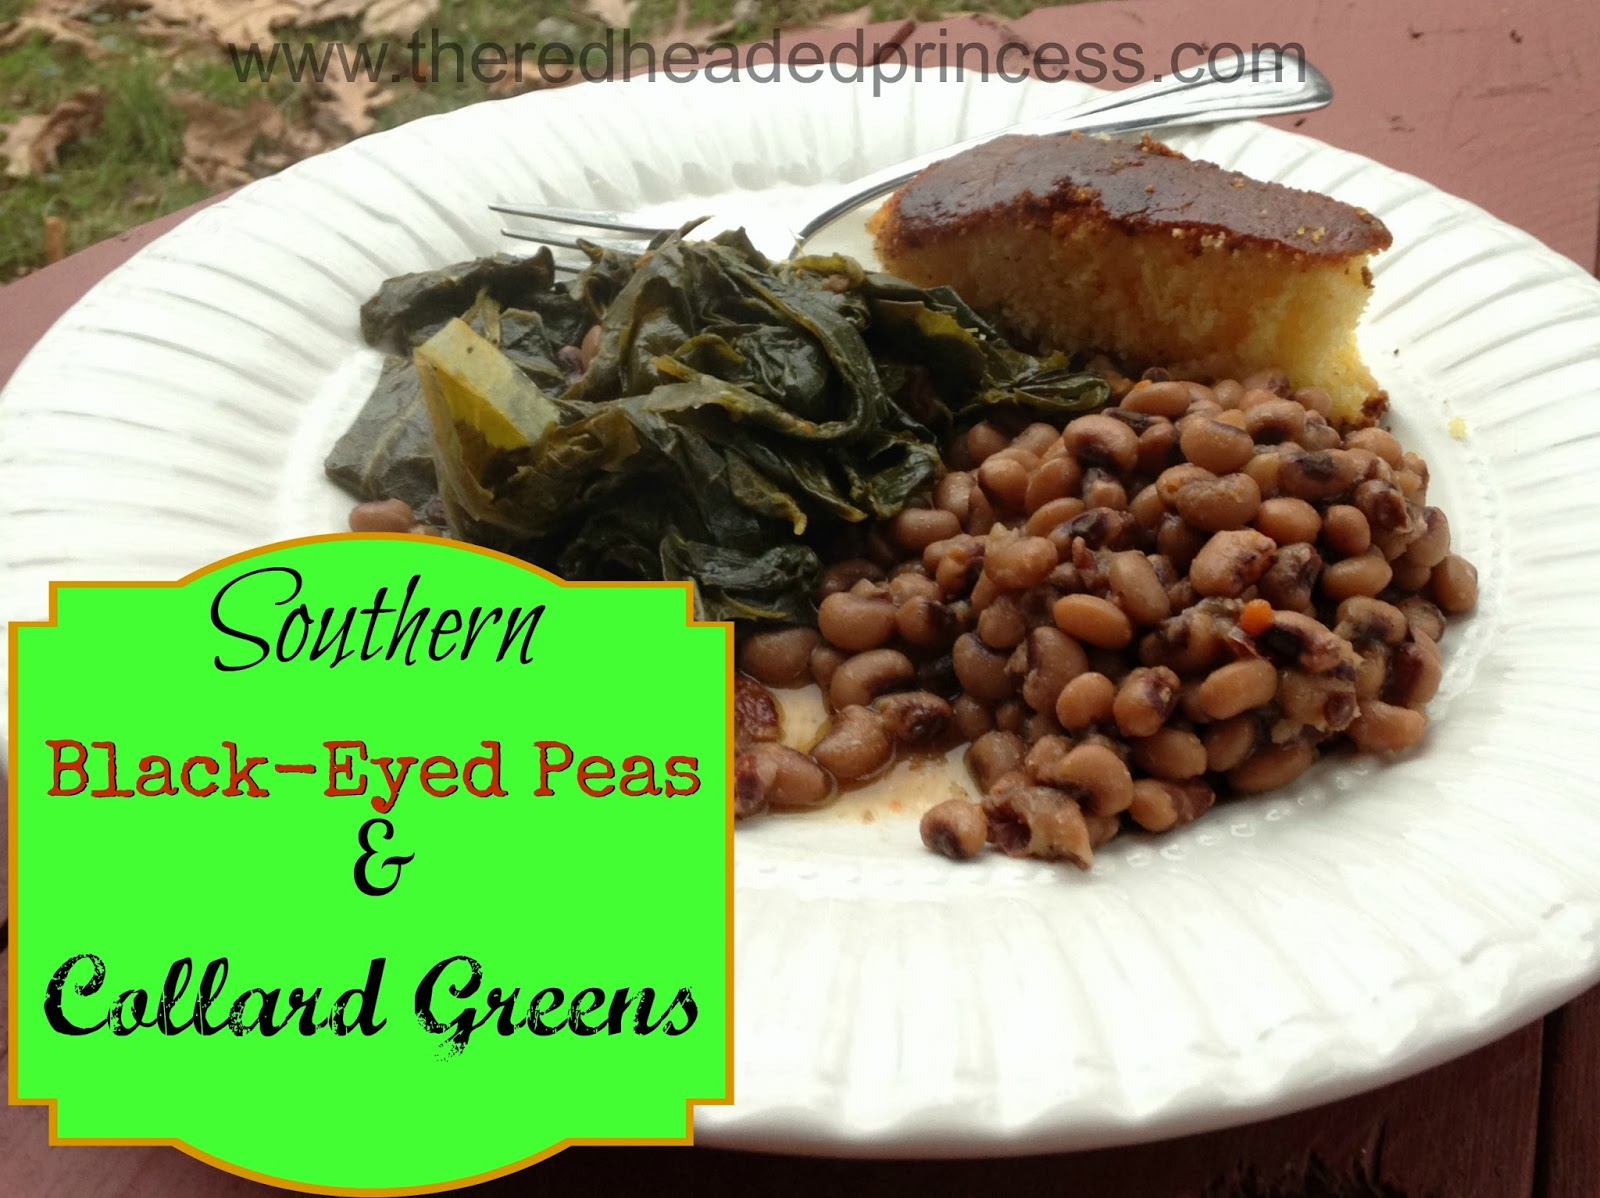 Blackeyed Peas & Collard Greens